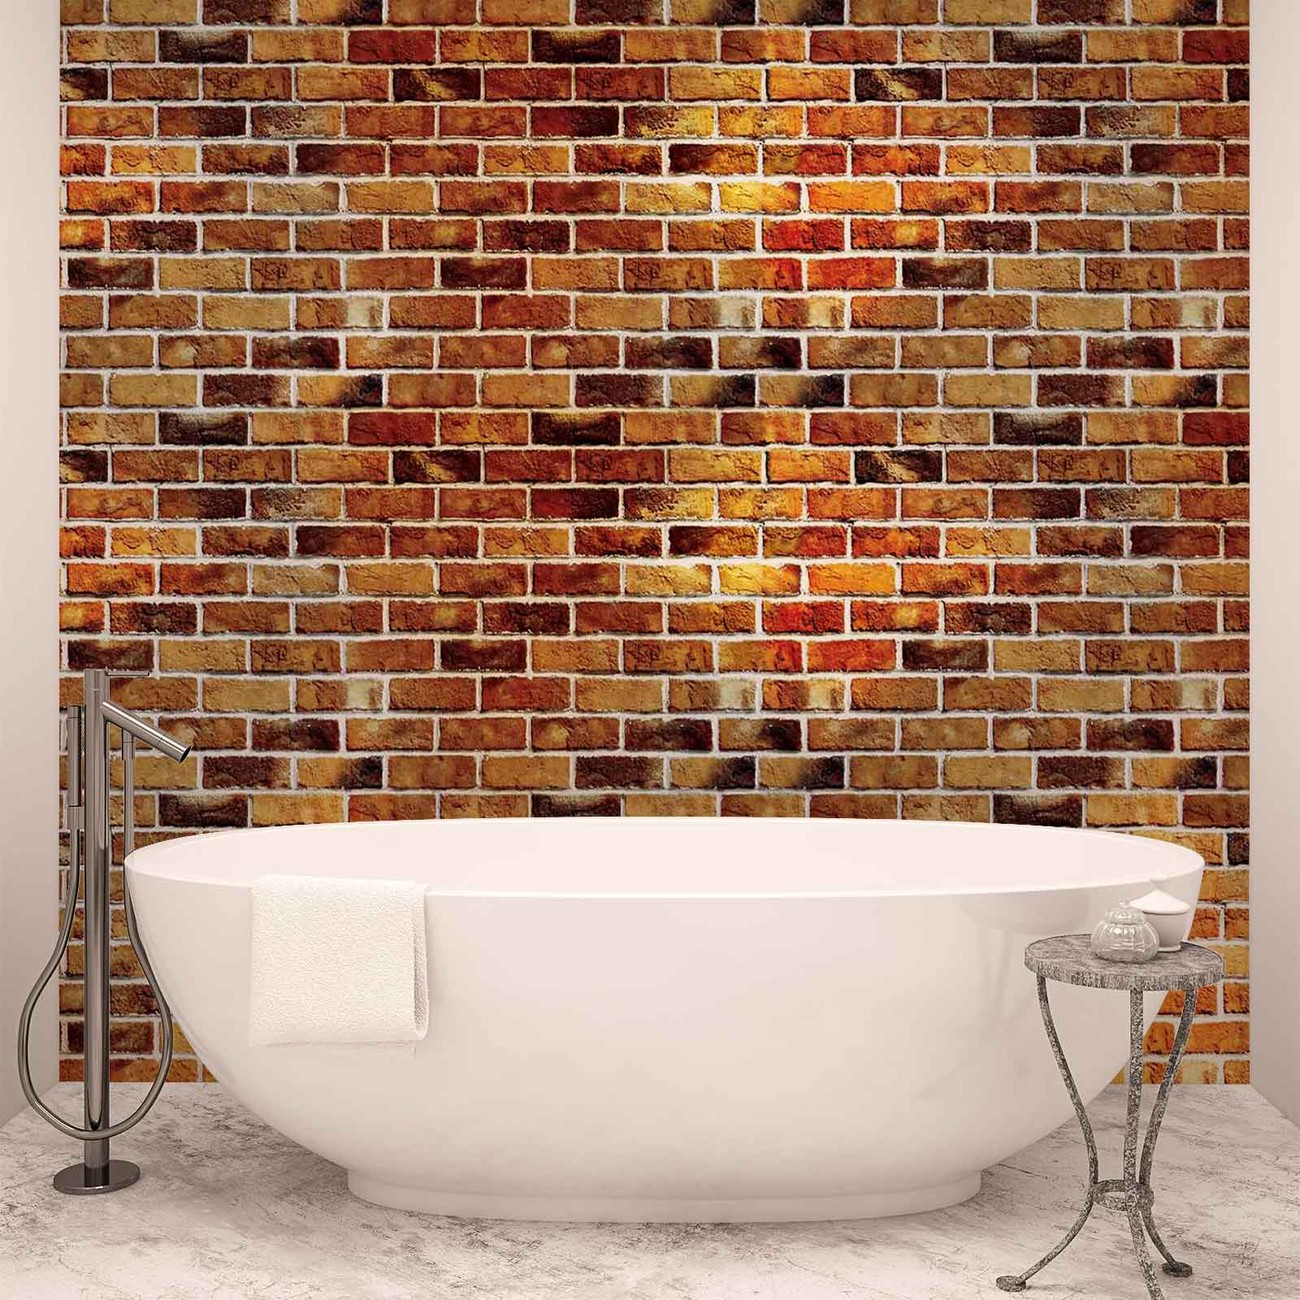 Brick wall wall paper mural buy at europosters for Brick wall decal mural